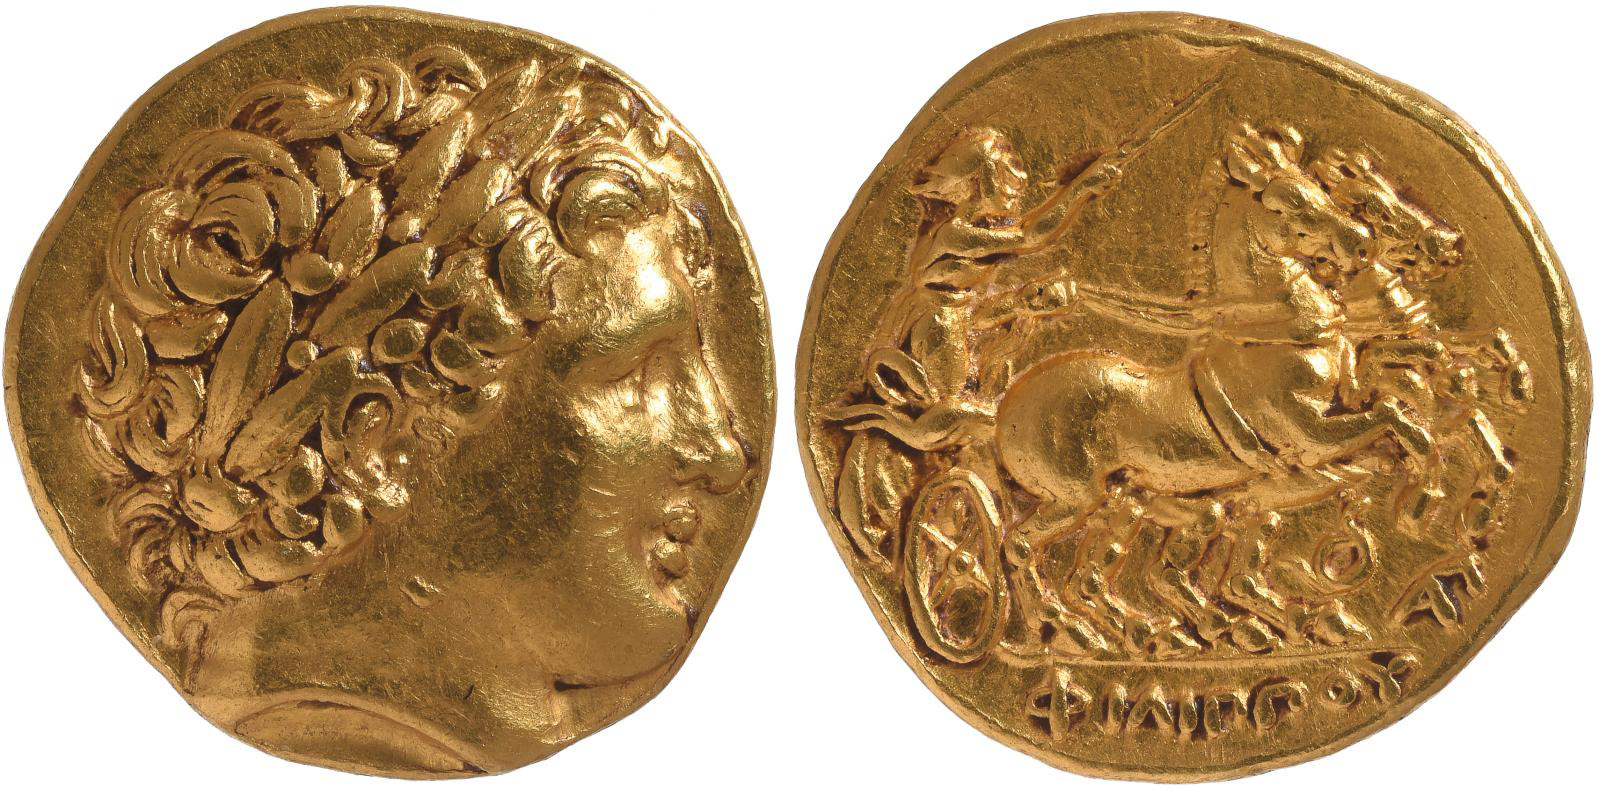 Philippe II Macedonia stater (359-336 BCE), gold, 8.58 gr (0.3 oz).© Philippe Jolivel - Banque de France